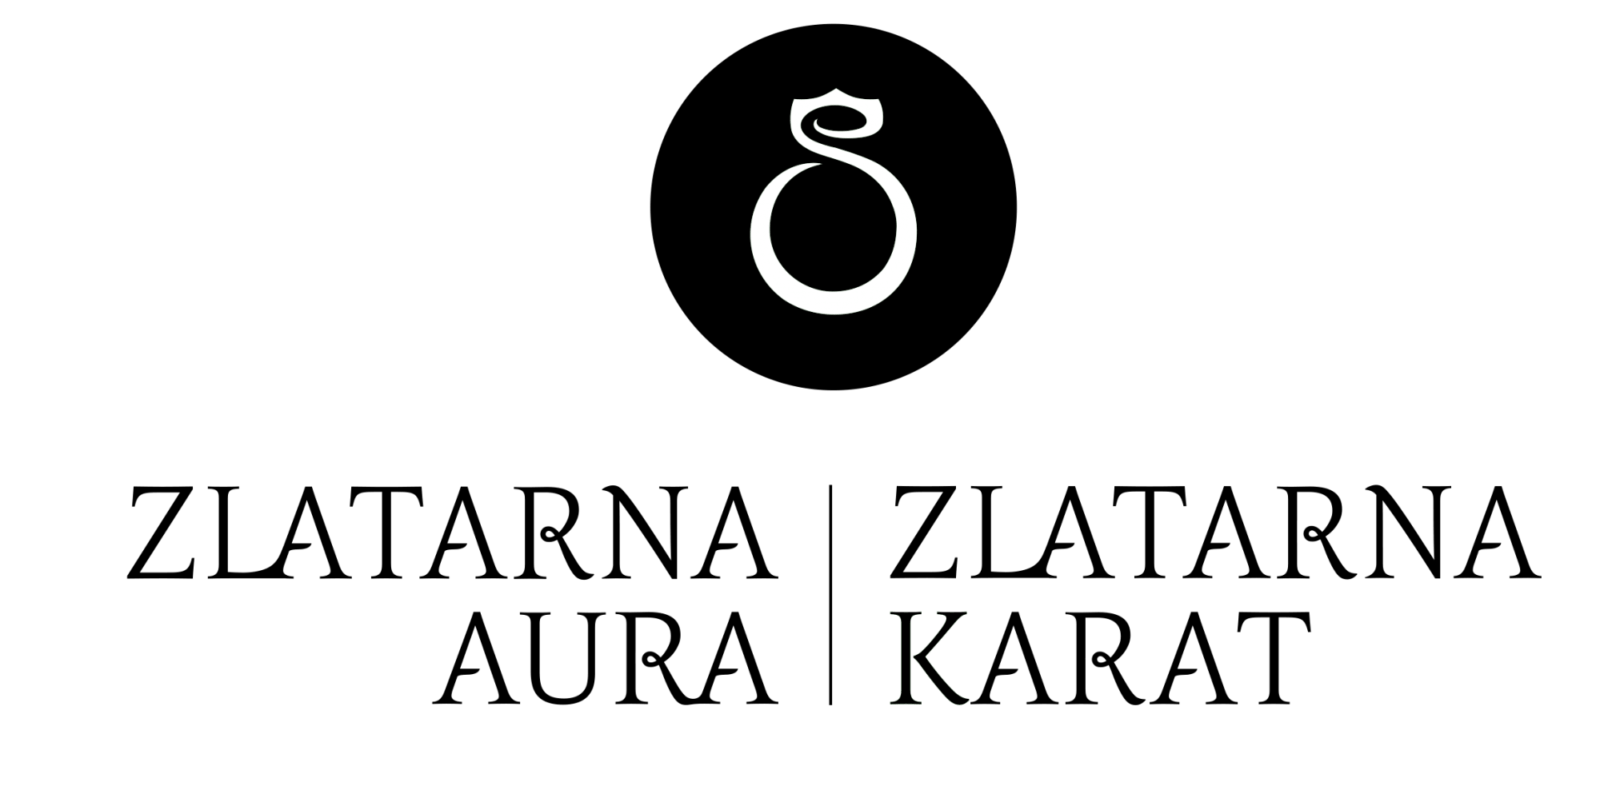 "Logotip Zlatarna Aura in Karat najnovejši črno beli na transparentni podlagi 1 - A ""Tip-Top"" song brings Nuša back to EMA after six years!"